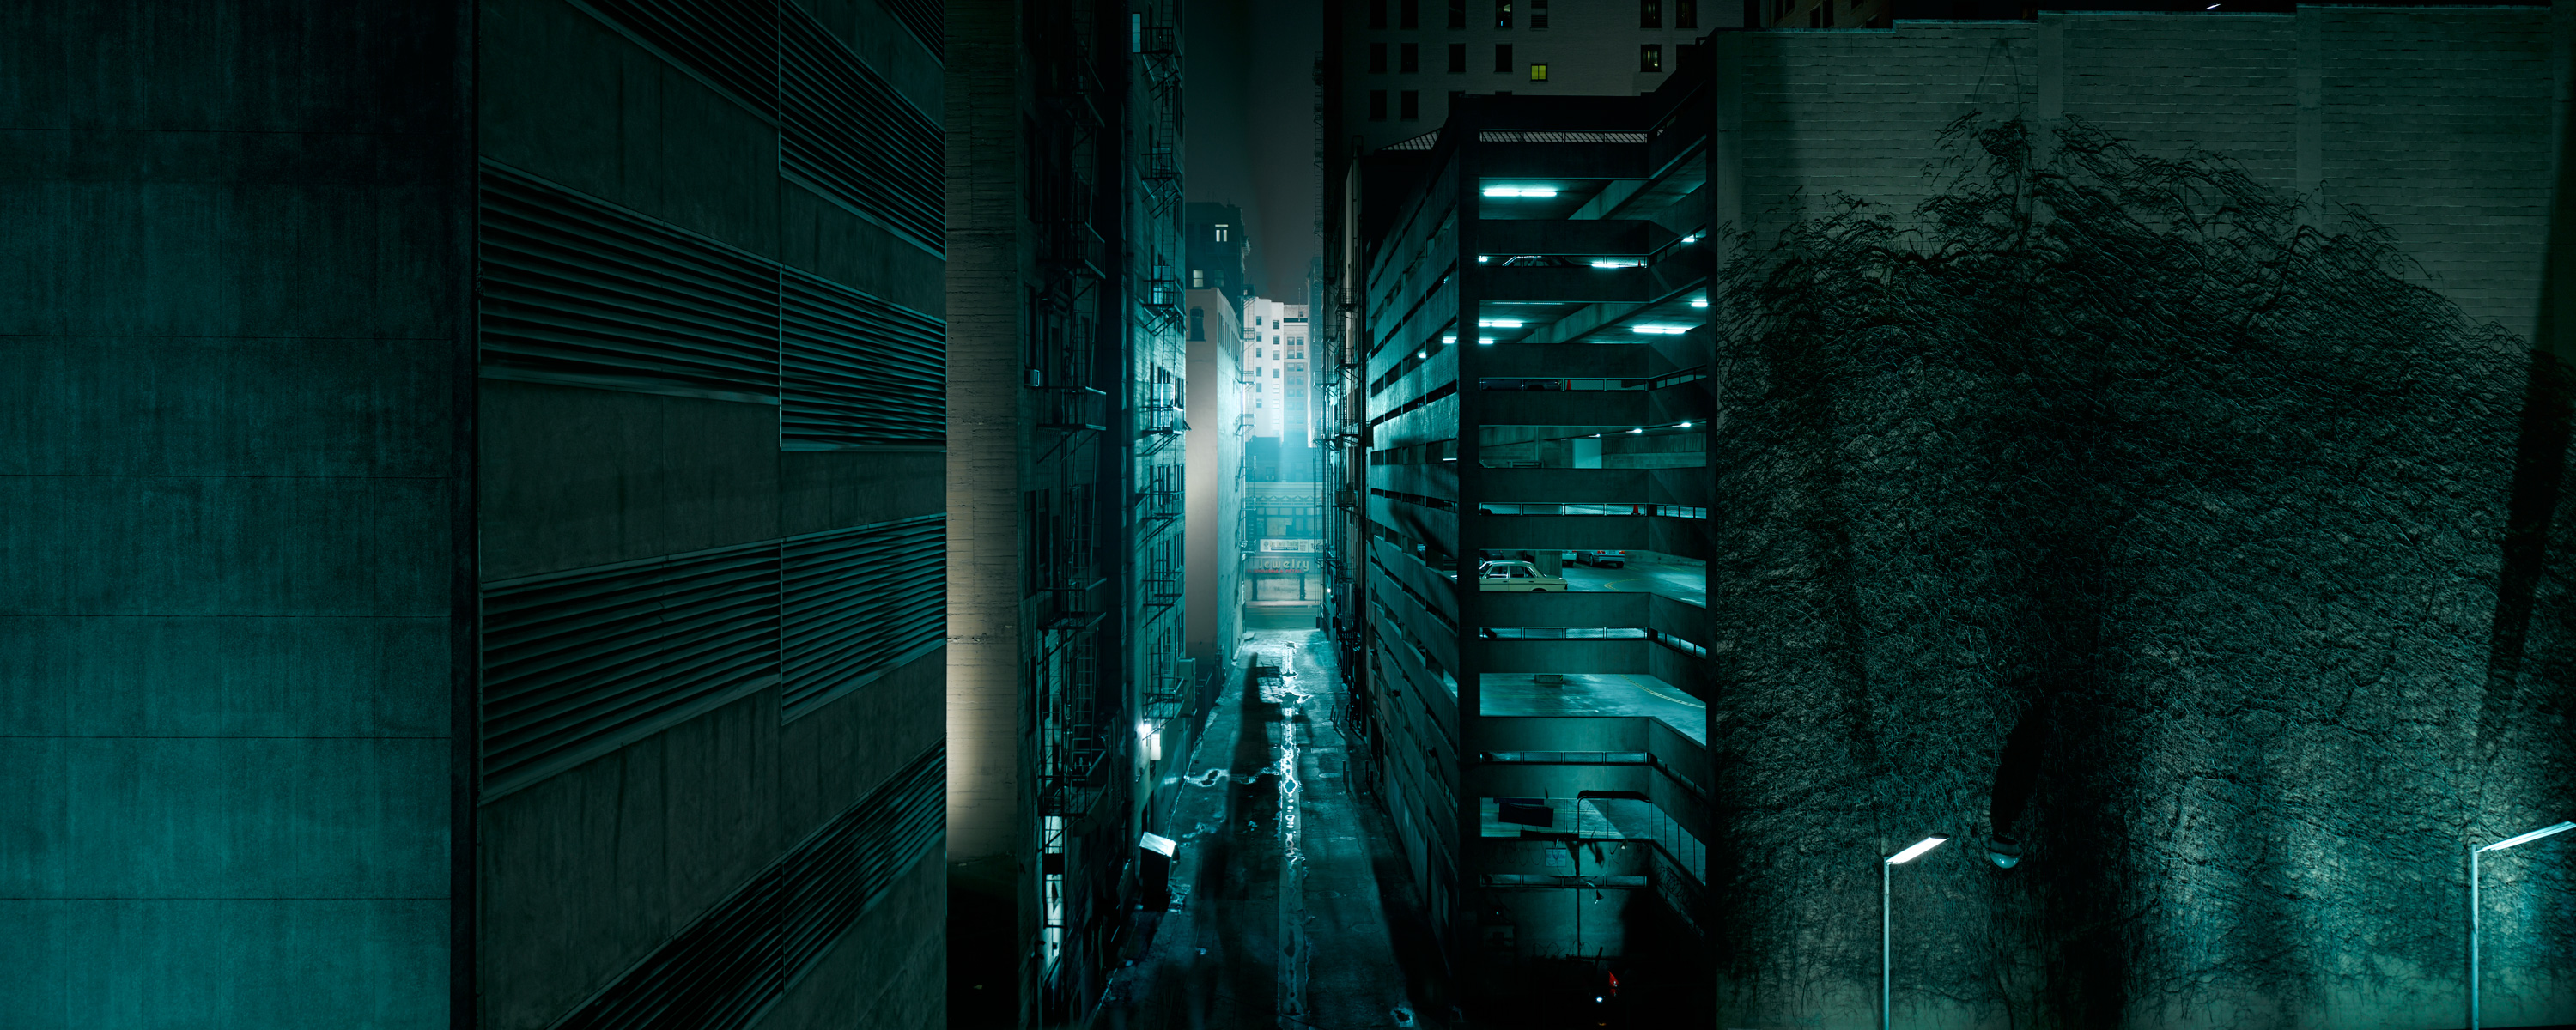 Downtown Los Angeles Alley view for Live Free or Die Hard by Richard Lund